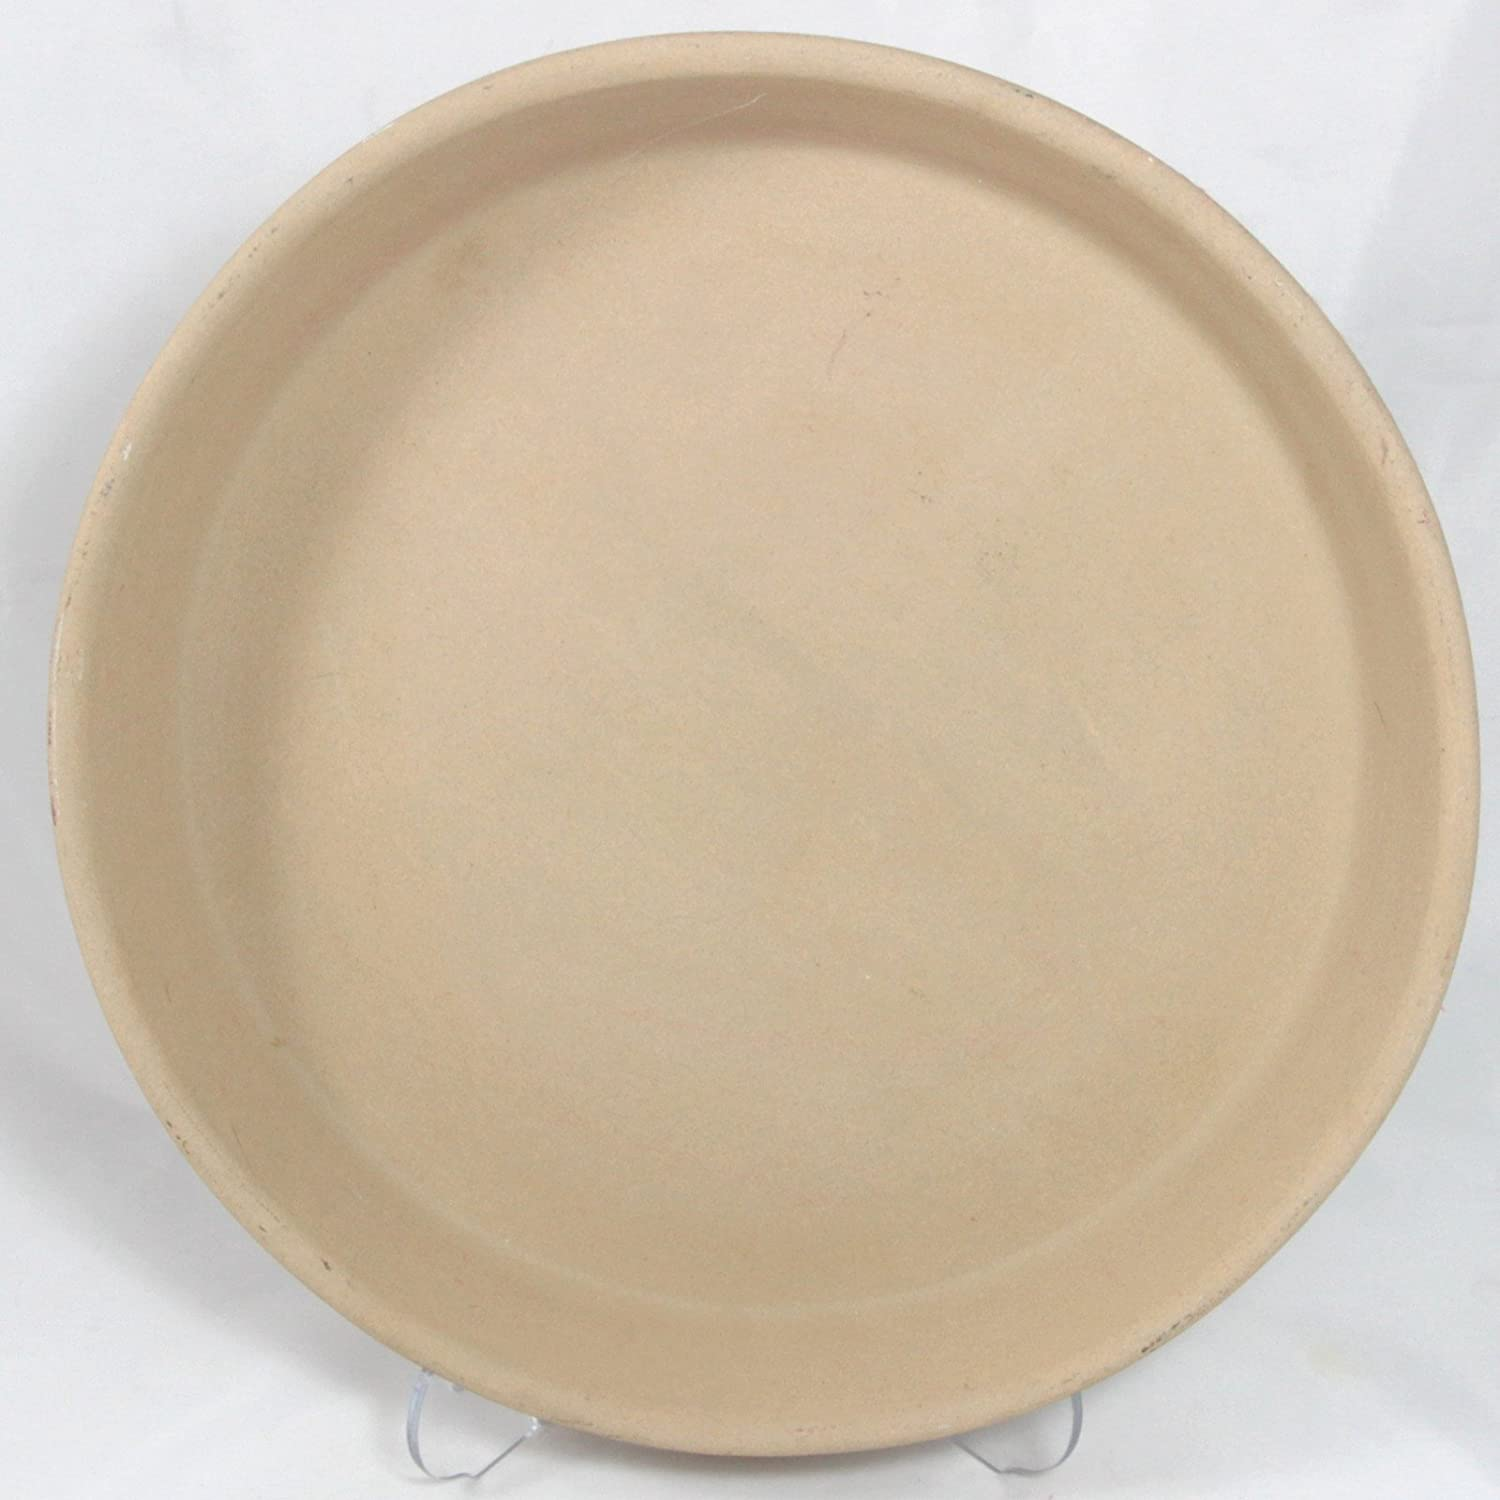 Amazon.com P&ered Chef Deep Dish Baker Baking Dishes Kitchen \u0026 Dining : pampered chef deep dish pie plate - pezcame.com